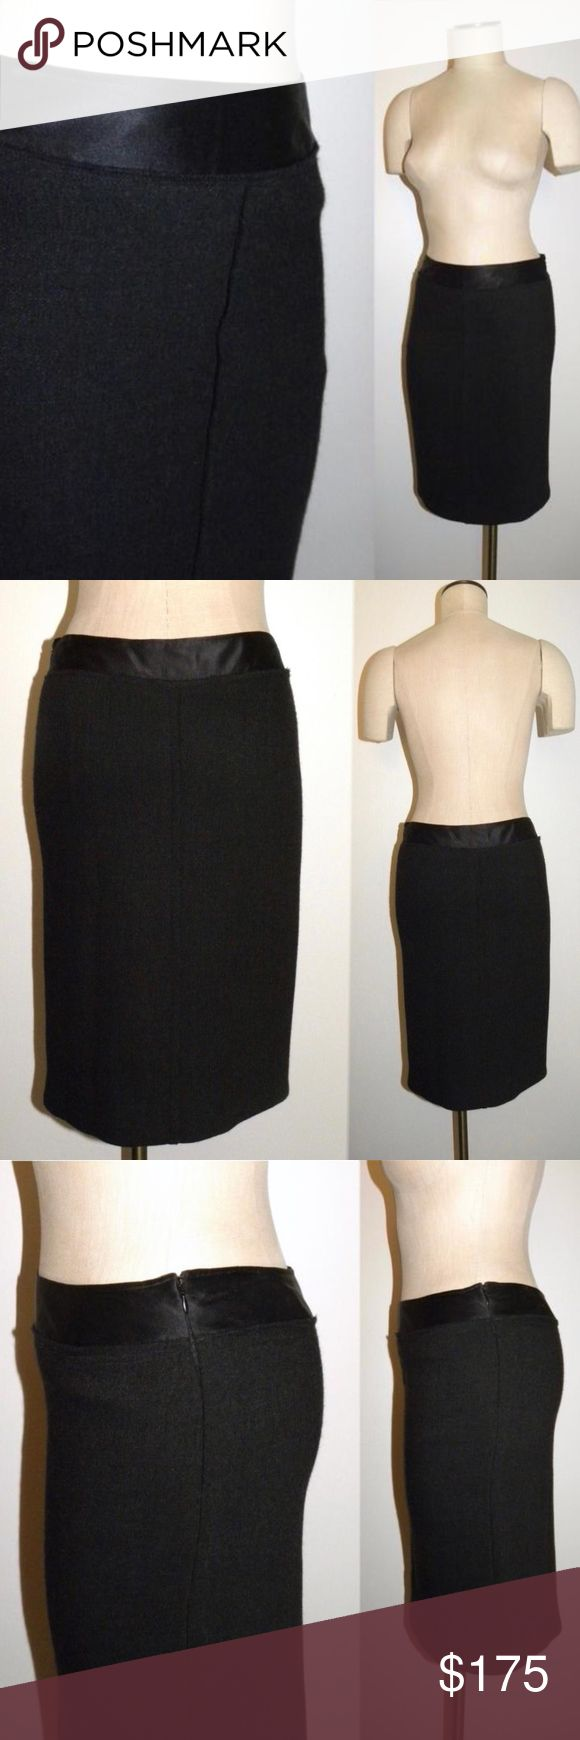 "PRADA Charcoal Gray Pencil Skirt Wool ITALY 42-6 Prada charcoal gray knee length pencil skirt. Seam at center front and back, zips at side. Silk band at waist, lined in silk. Color is very dark almost black. Wool blend has a bit of stretch.  FORM in photos measures 26.25"" waist, 35"" hip SIZE:  Italy 42, US 6  CONDITION: Excellent, no flaws  MEASURED: Waist, flat - about 14.5"" Hip, flat - about 17.75"" Hem, flat - about 16.5"" Length, measured at side seam - about 23"" Zipper - about 6"" Prada…"